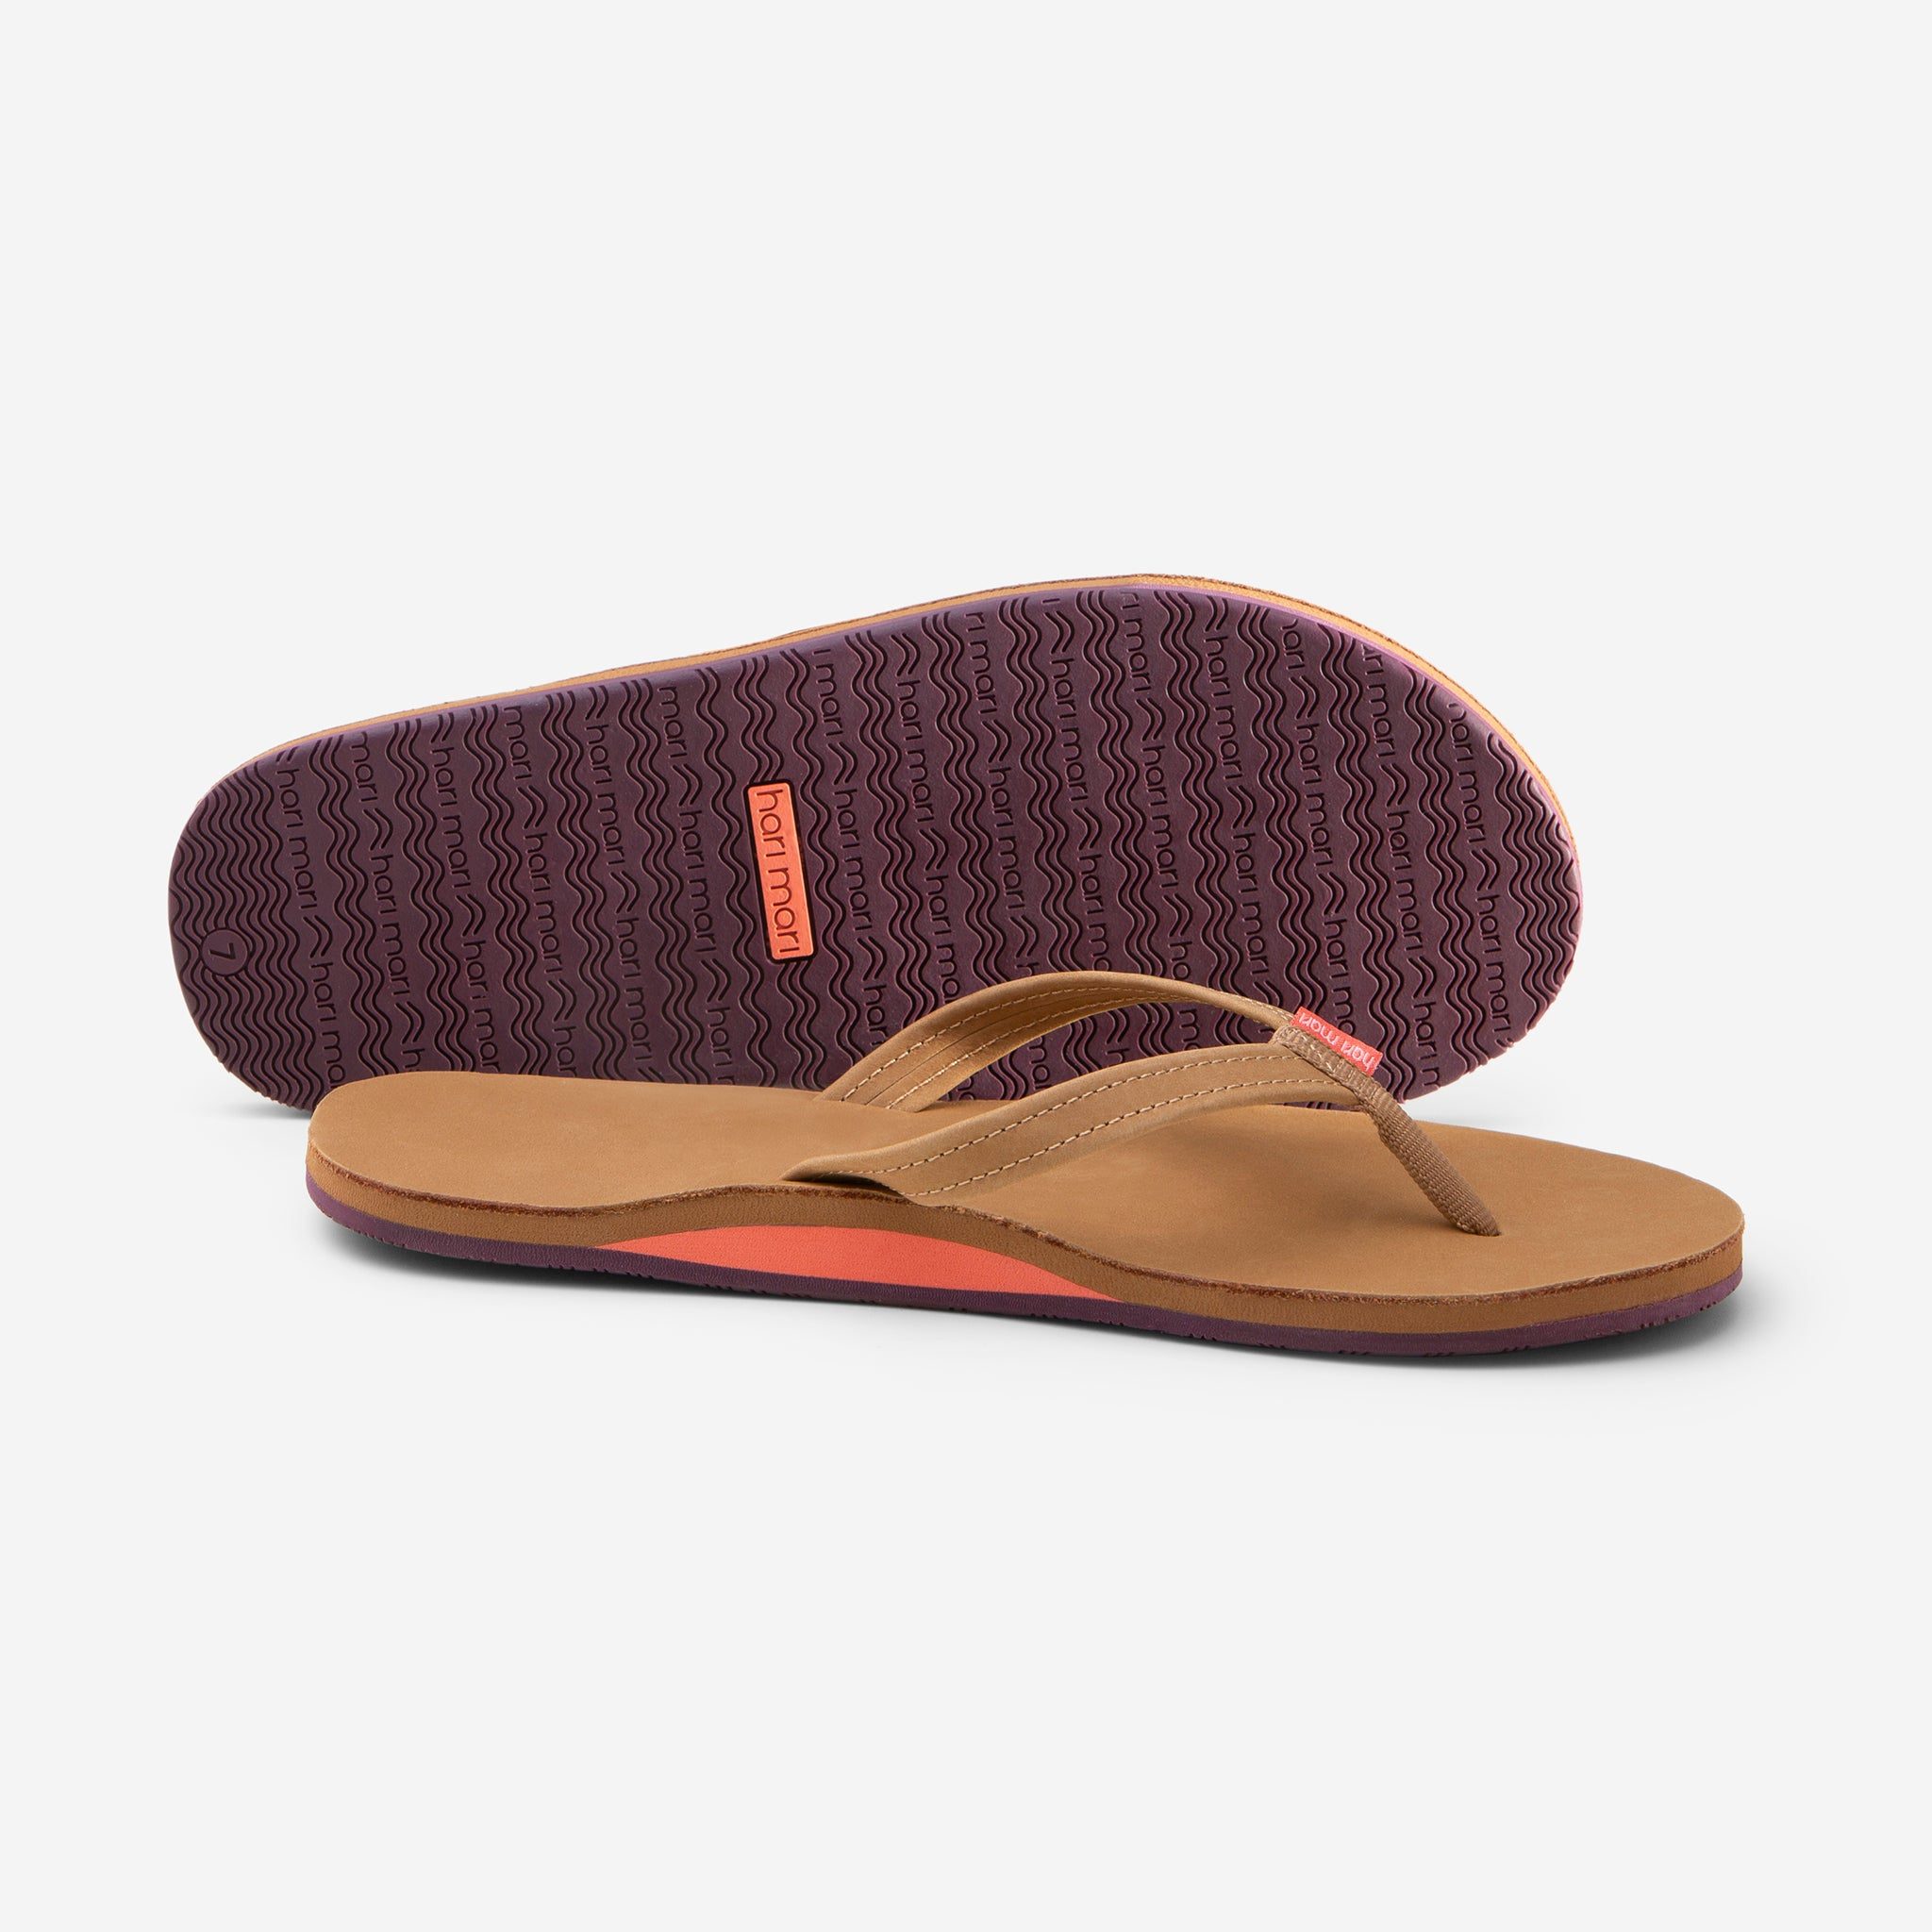 Hari Mari Women's fields flip flops in tan/fig picture showing shoe and bottom of shoe rubber outsole on white background